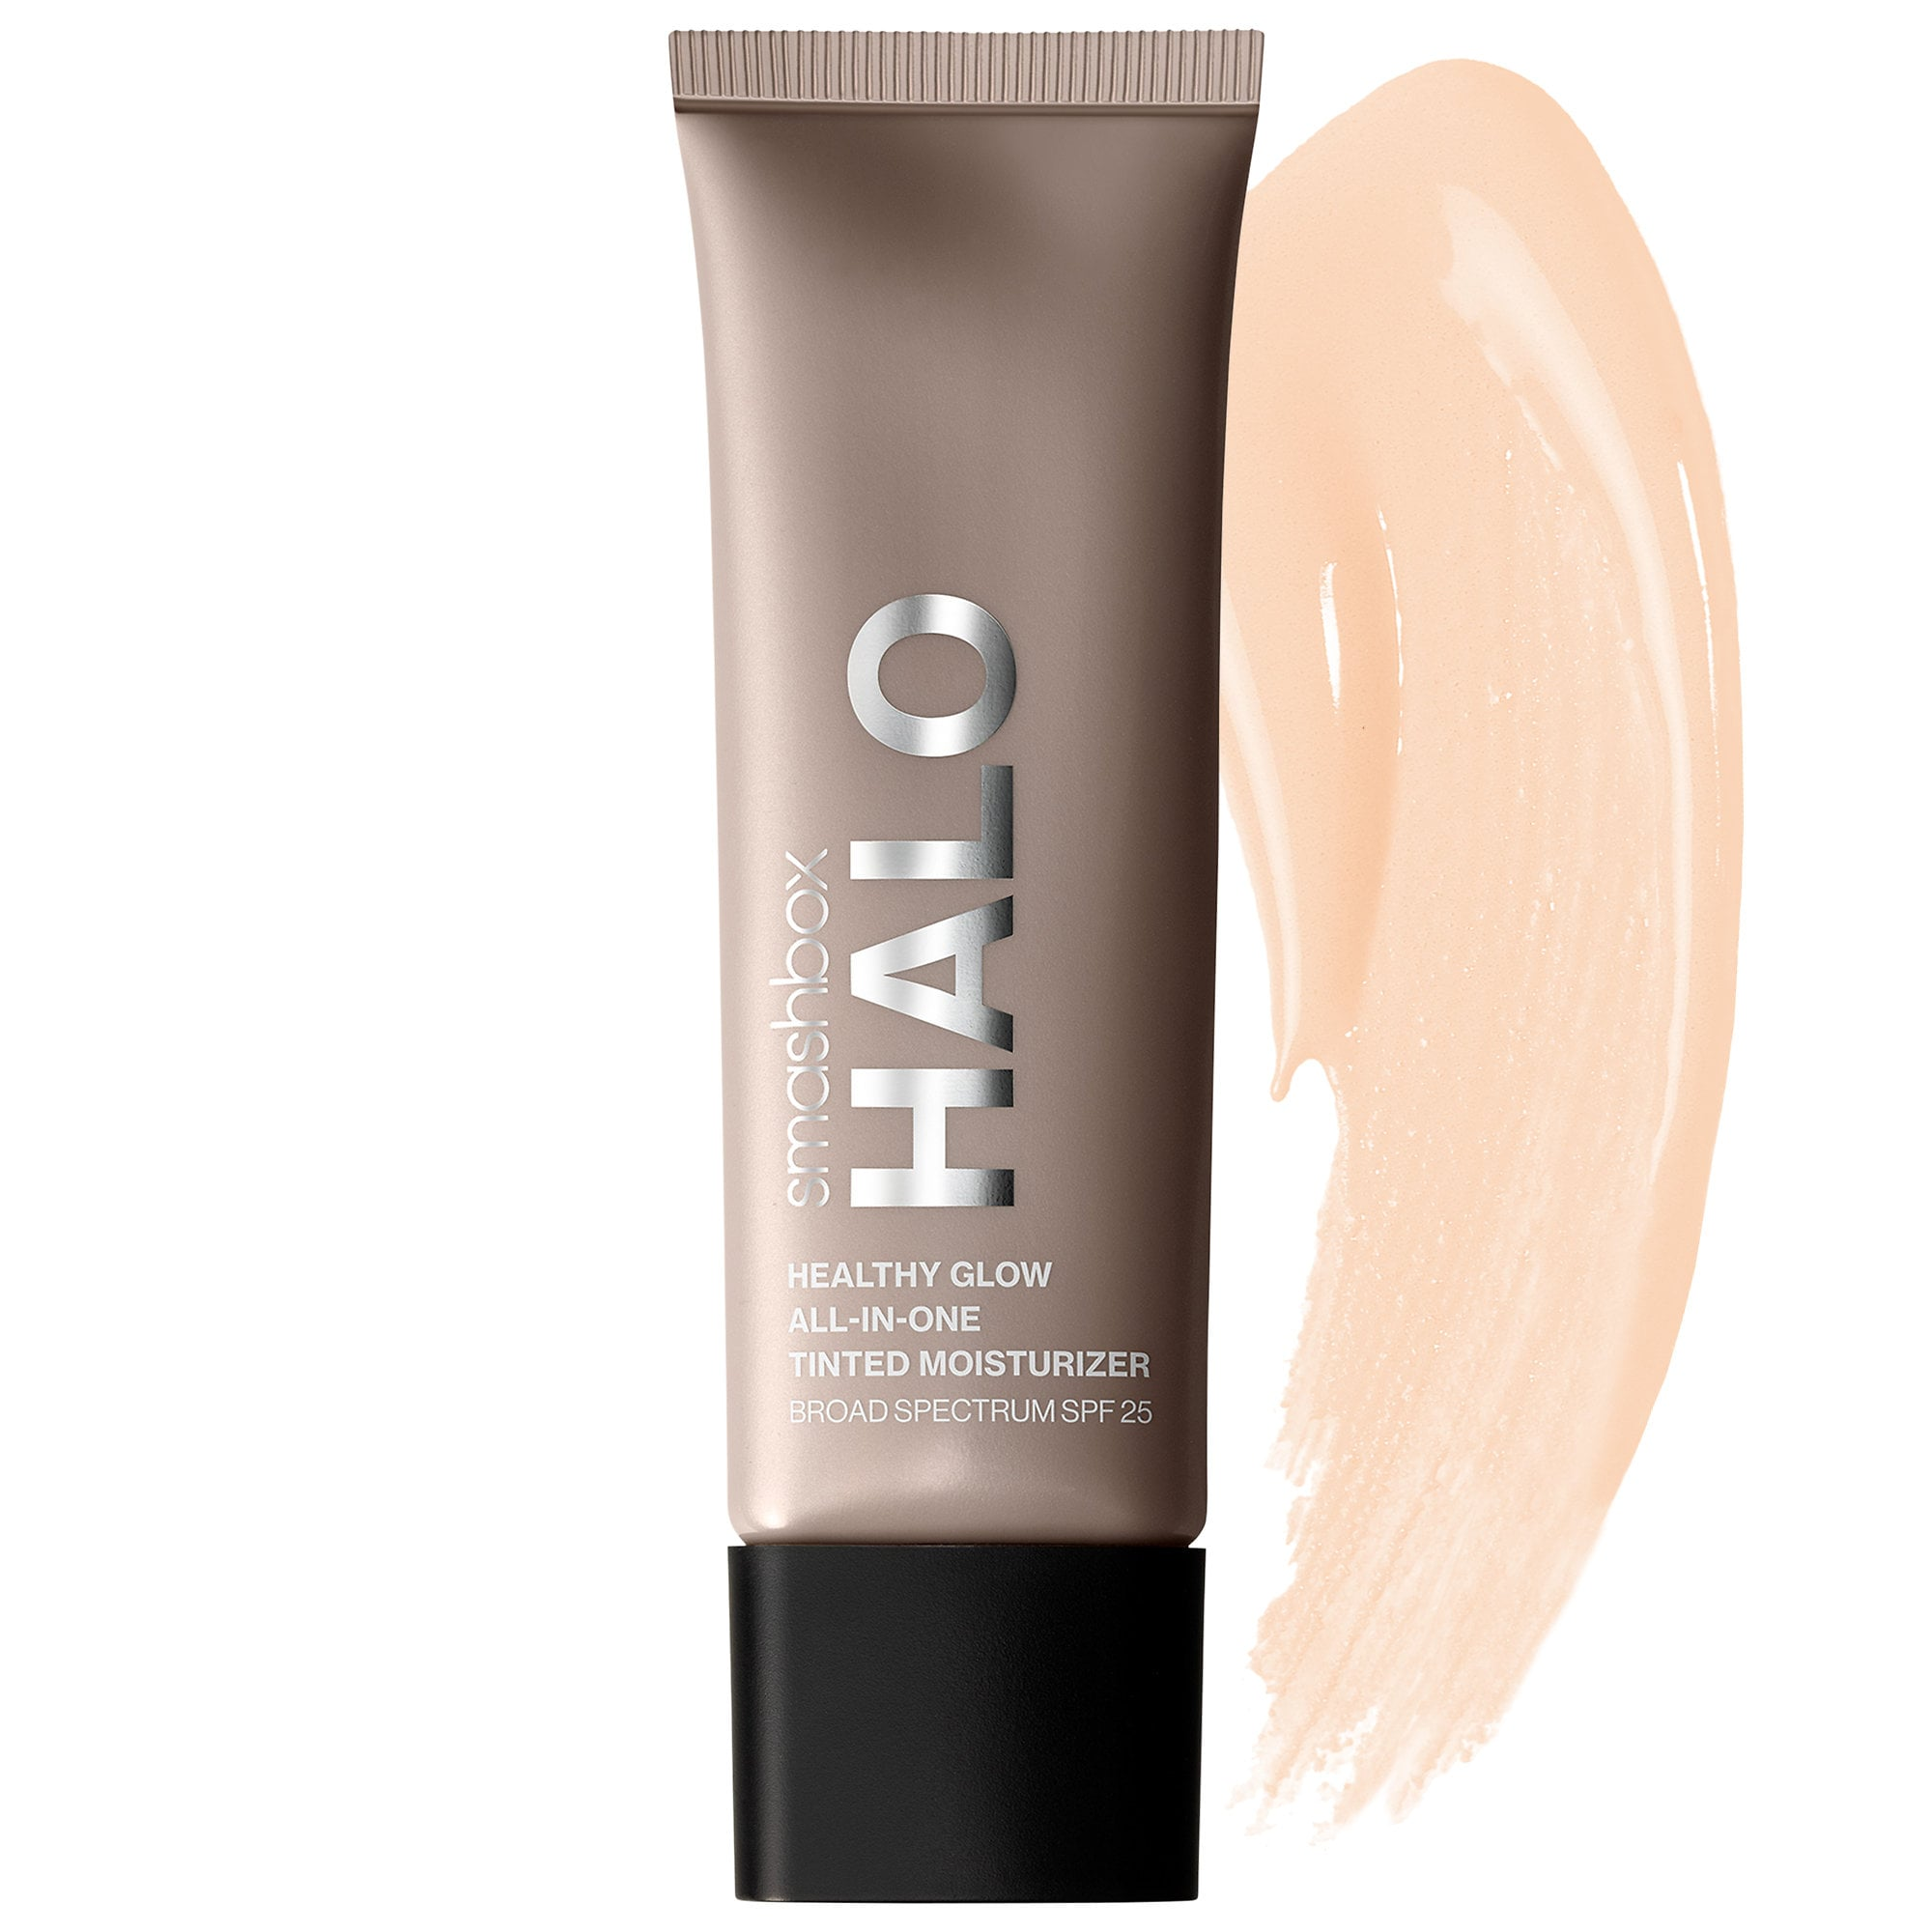 Smashbox - Halo Healthy Glow Tinted Moisturizer Broad Spectrum SPF 25